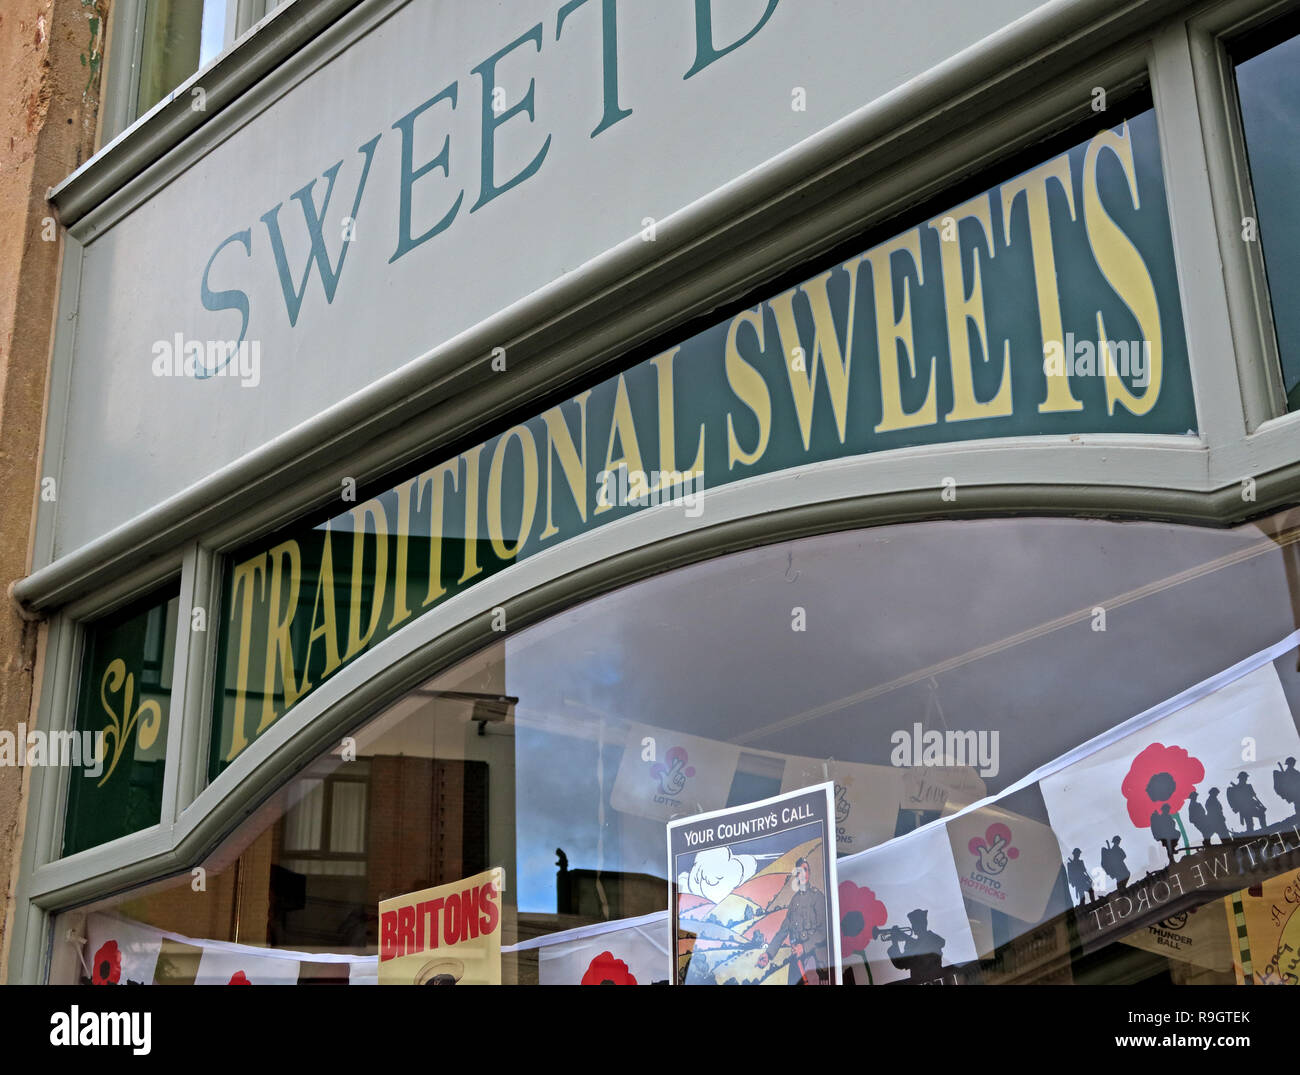 Traditional Sweets, sweet Shop, Sweetbox, 30 Cornhill, high Street, Bridgwater, Somerset, South East England, UK, TA6 3BY - Stock Image